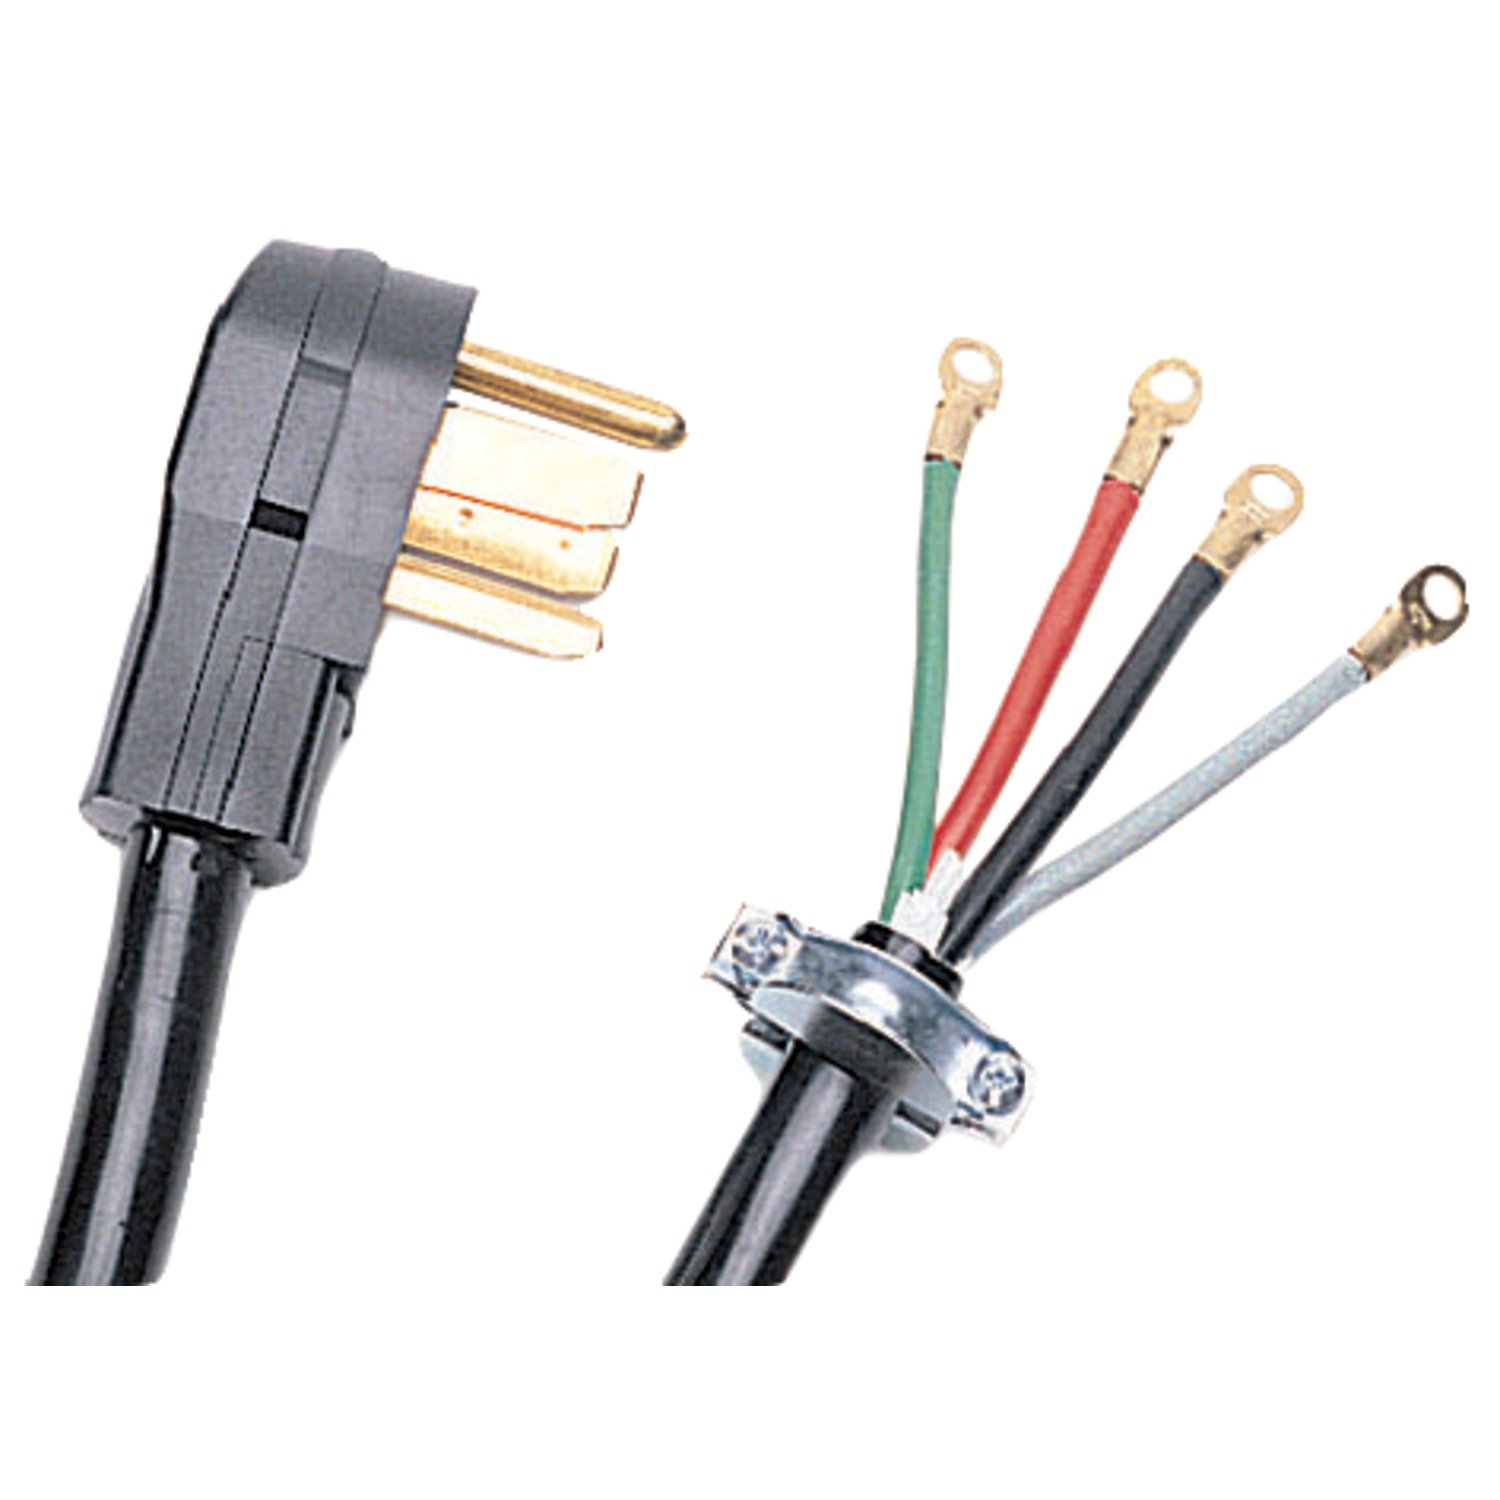 617jsJUbnvL._SL1500_ amazon com certified appliance 90 2028 4 wire dryer cord (10ft 4 wire plug wiring at n-0.co